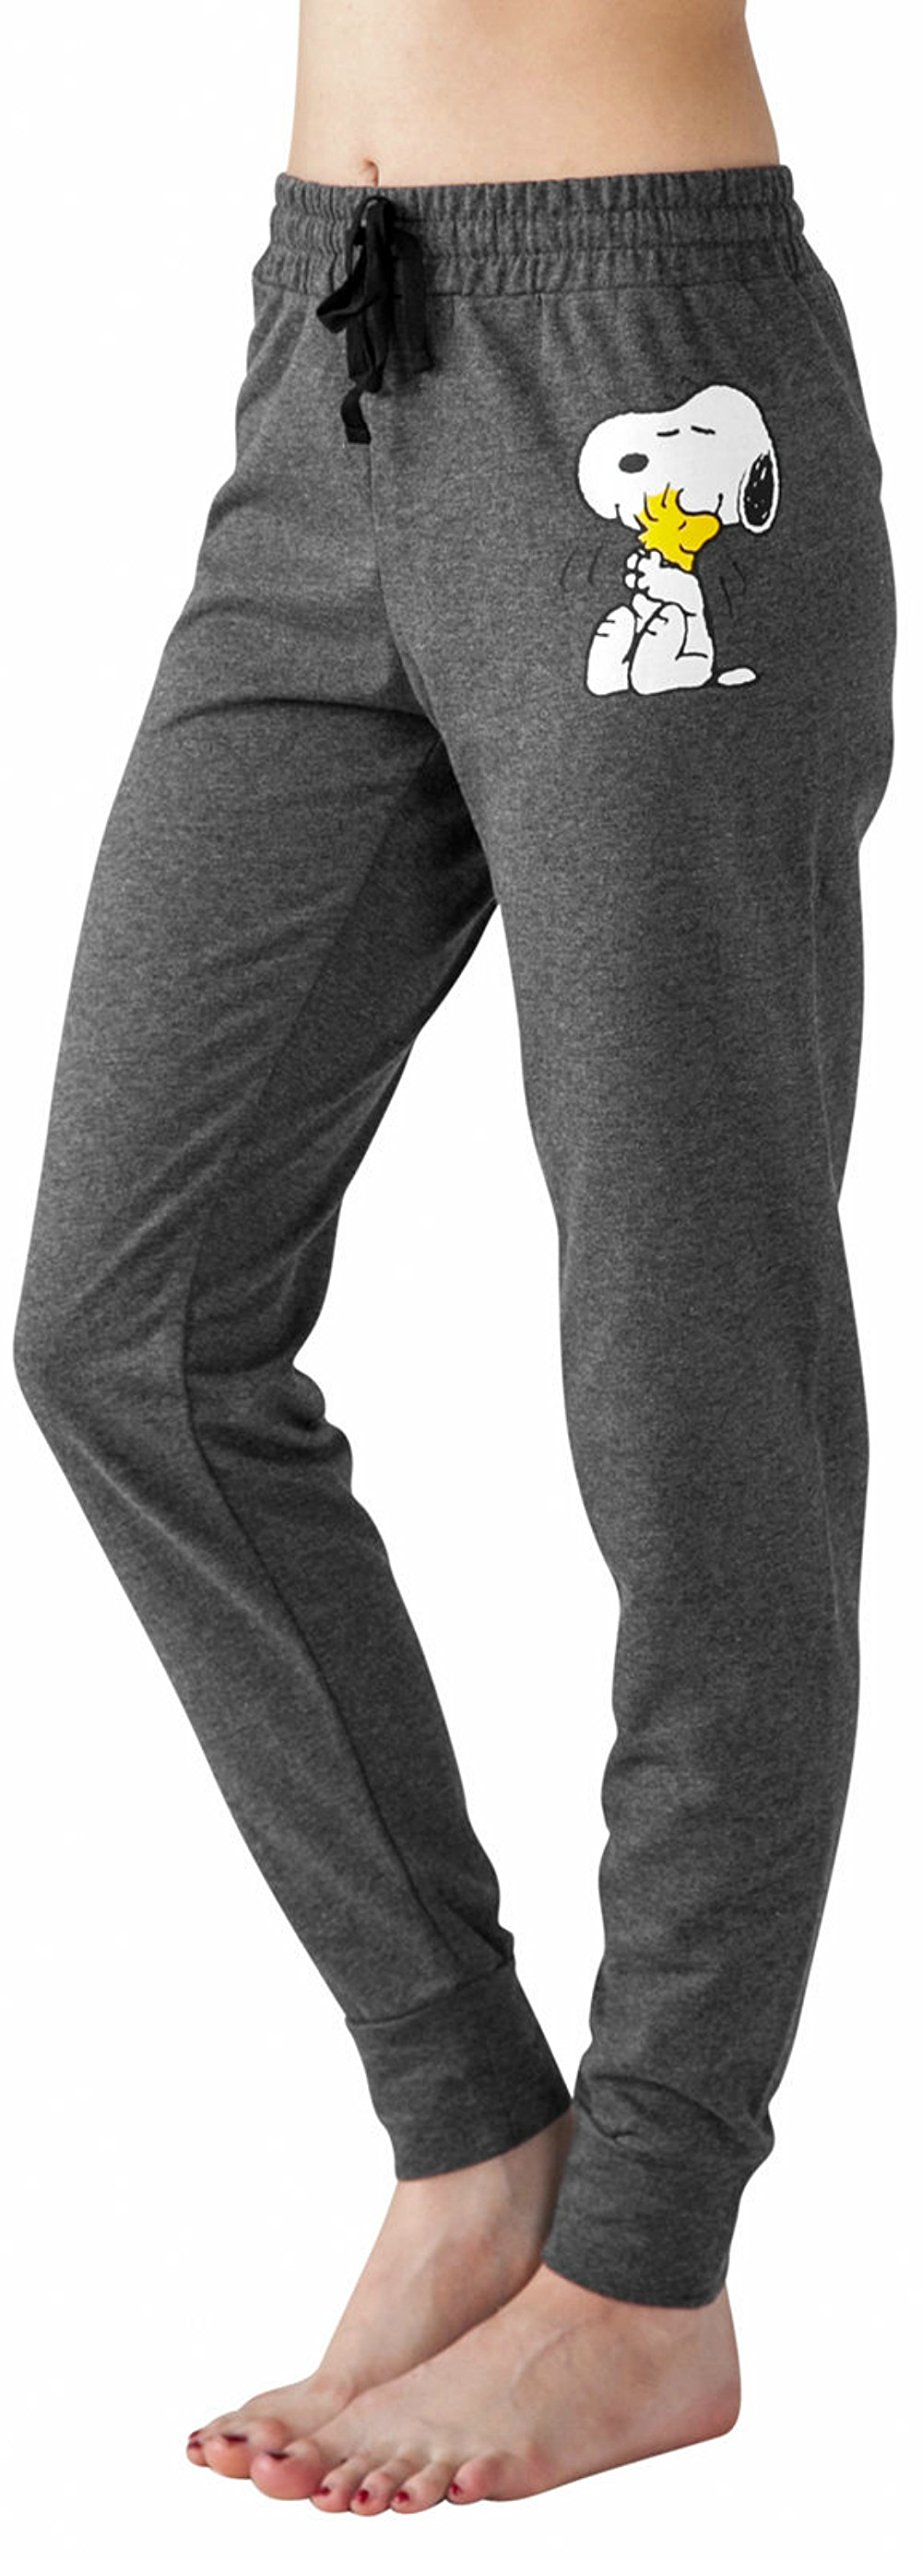 Peanuts Snoopy Charlie Brown Woodstock Women's Juniors Jogger Pant Legging Yoga Pants Grey (Large, Snoopy Woodstock)